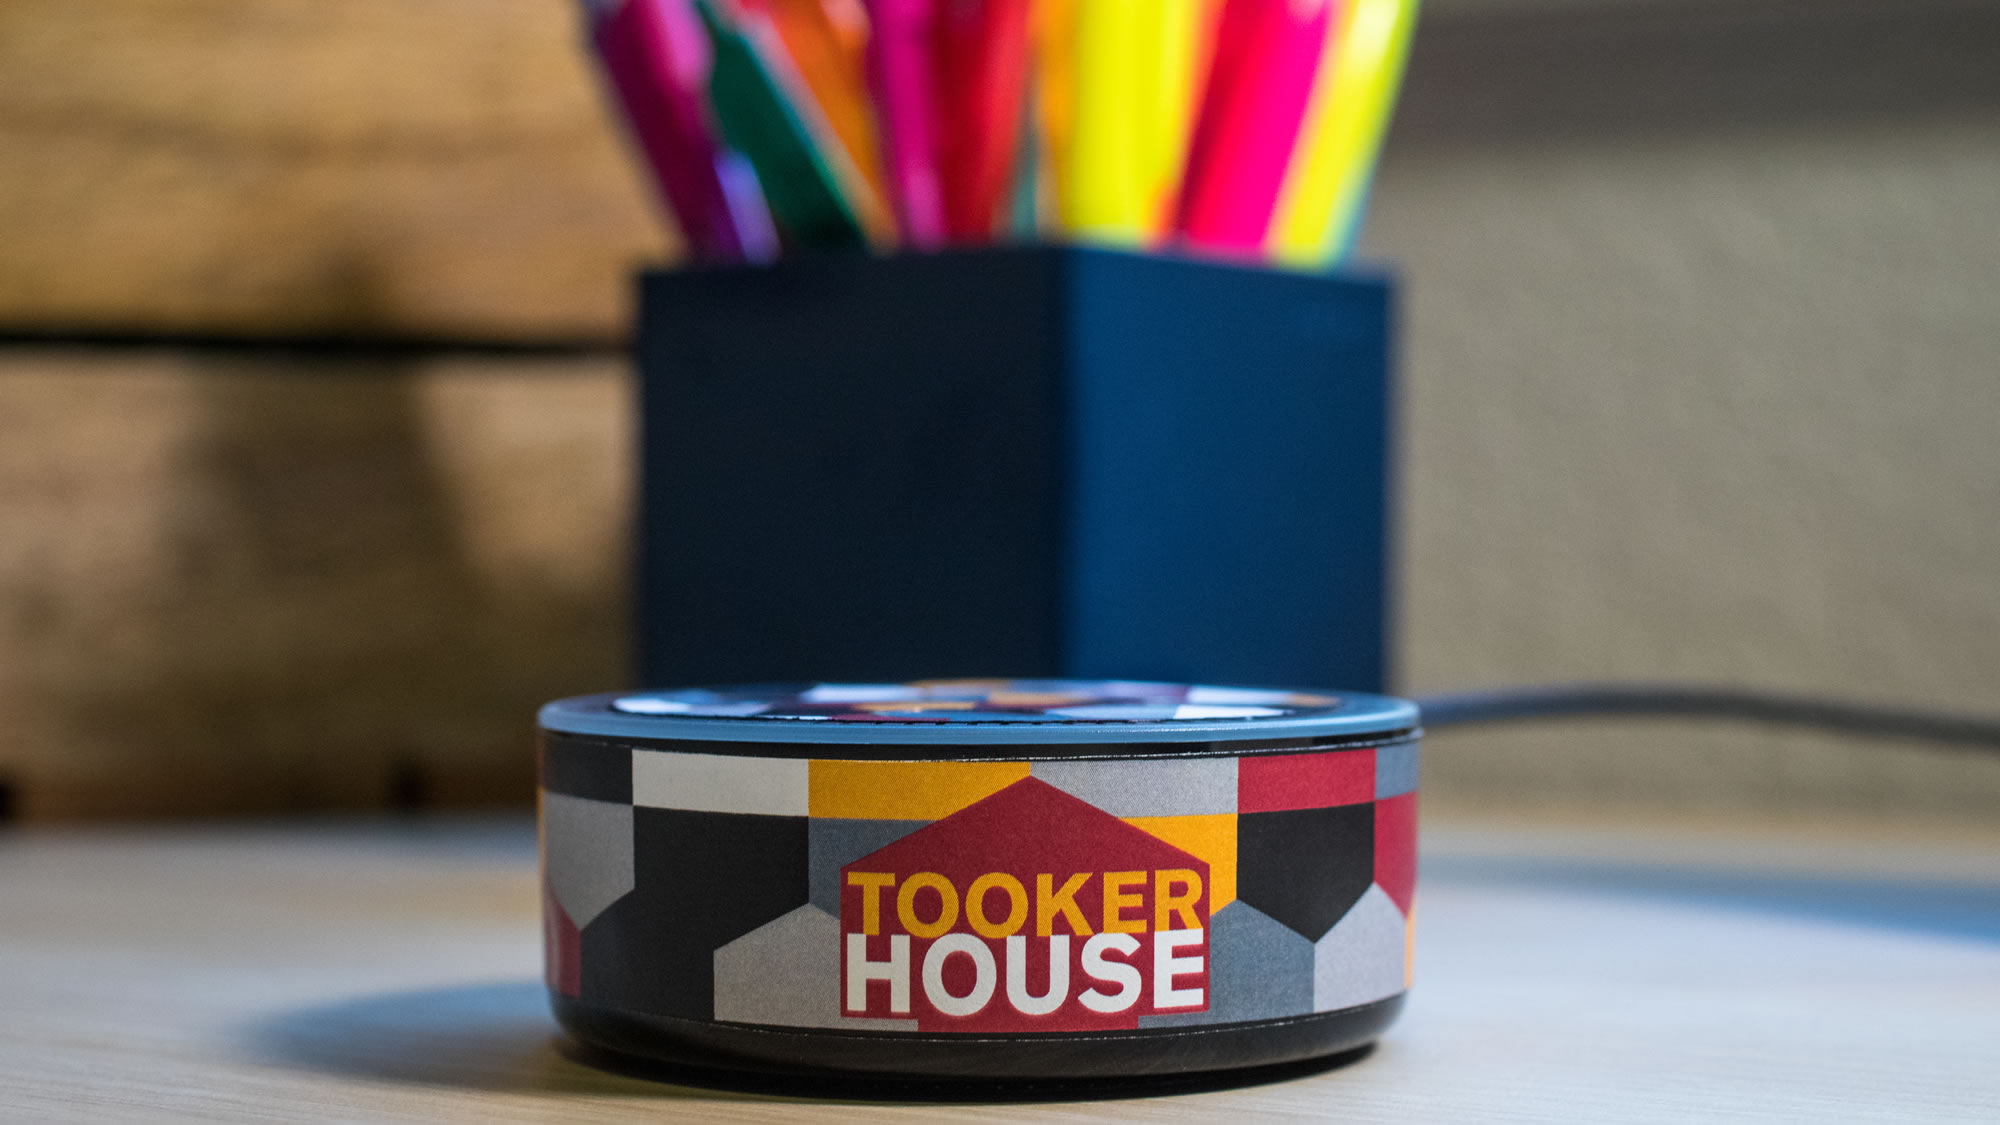 A Tooker House-branded Echo Dot (TM) sits on a desk in front of a box of pencils and highlighters.